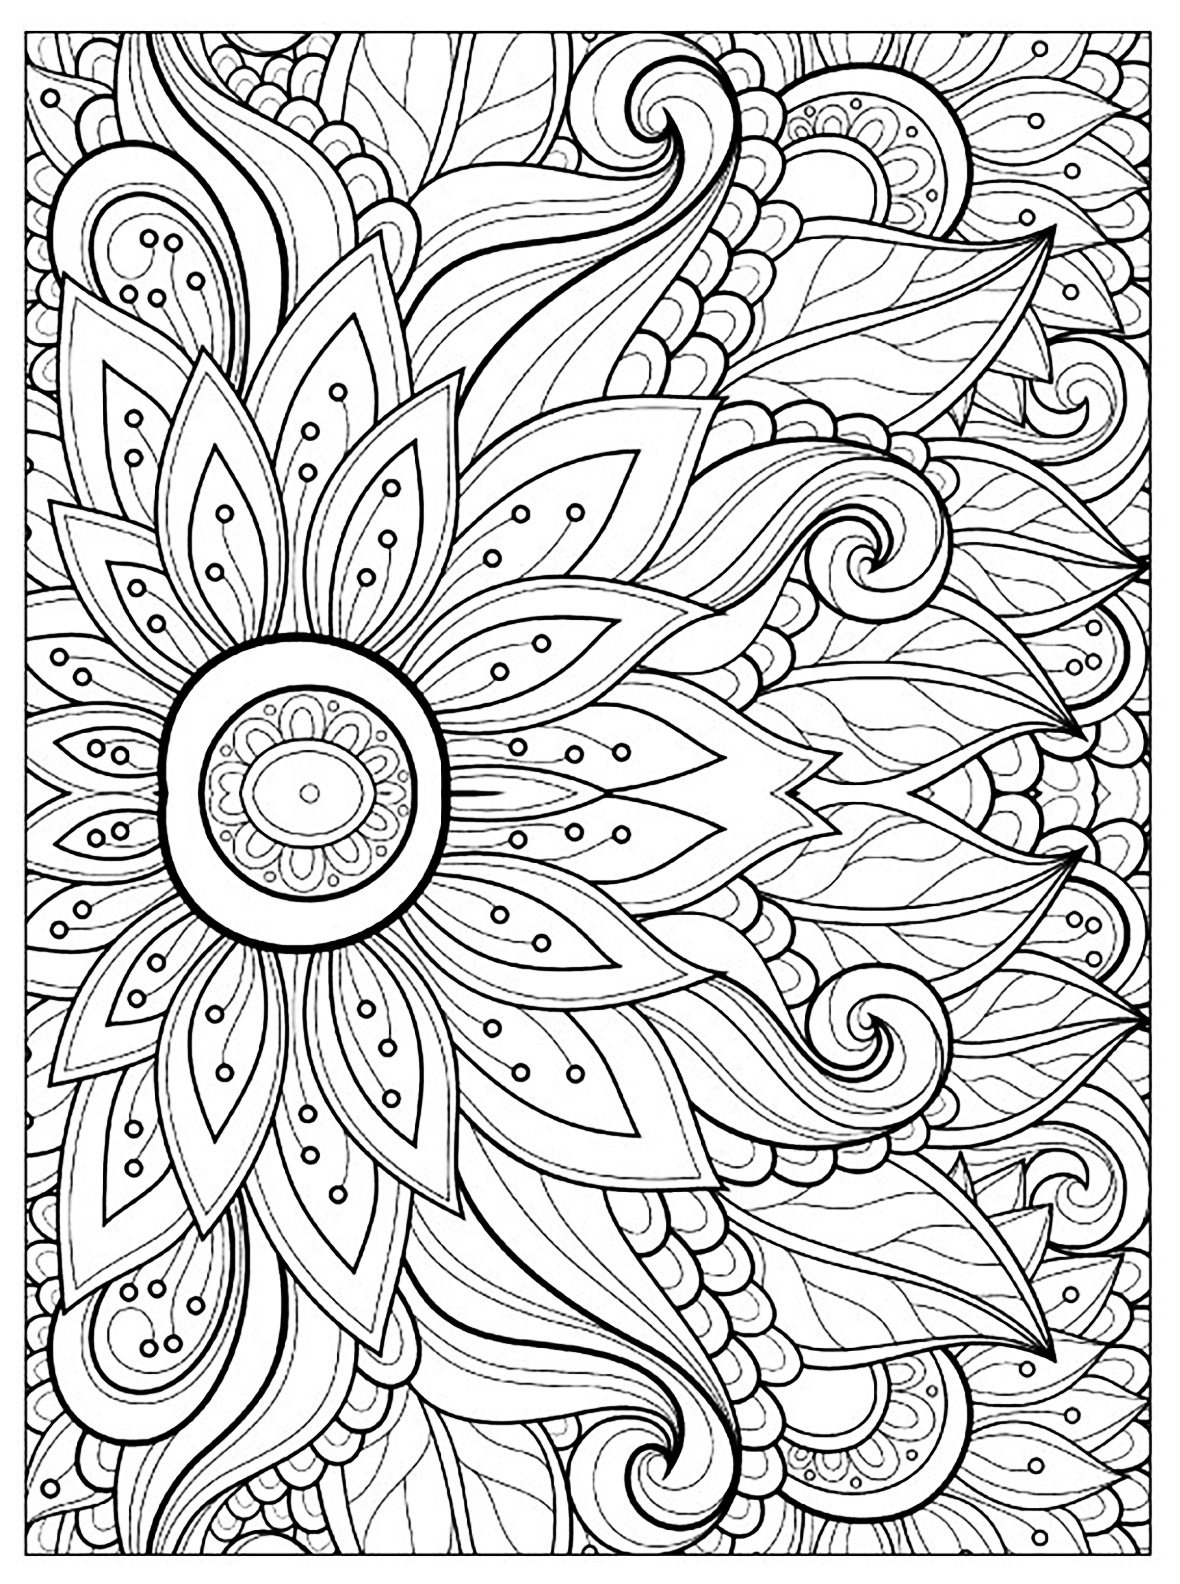 Free Flowers coloring page to download